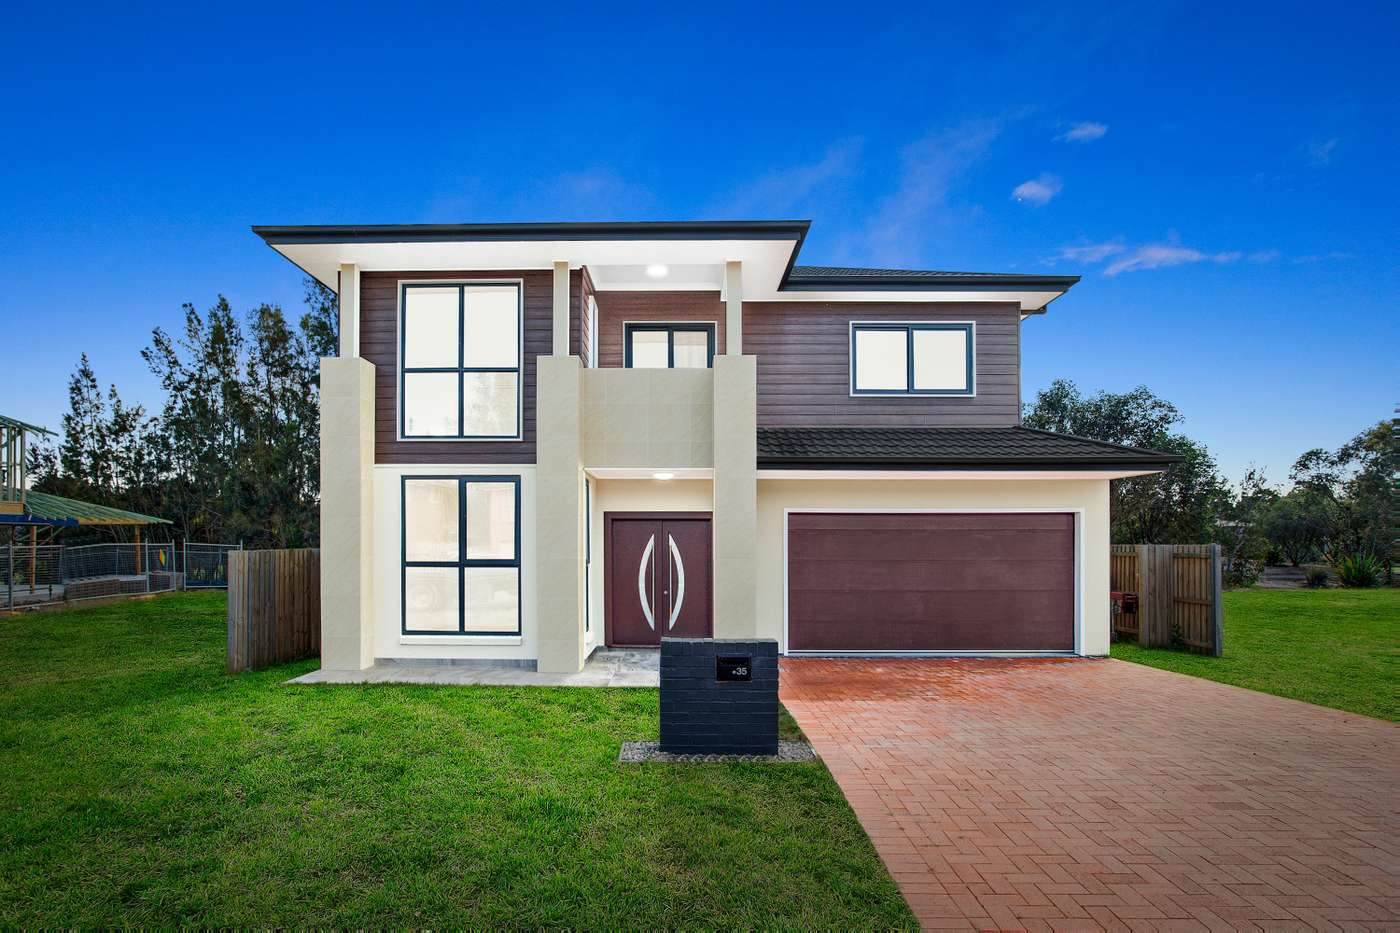 Main view of Homely house listing, 35 Windsorgreen Drive, Wyong, NSW 2259